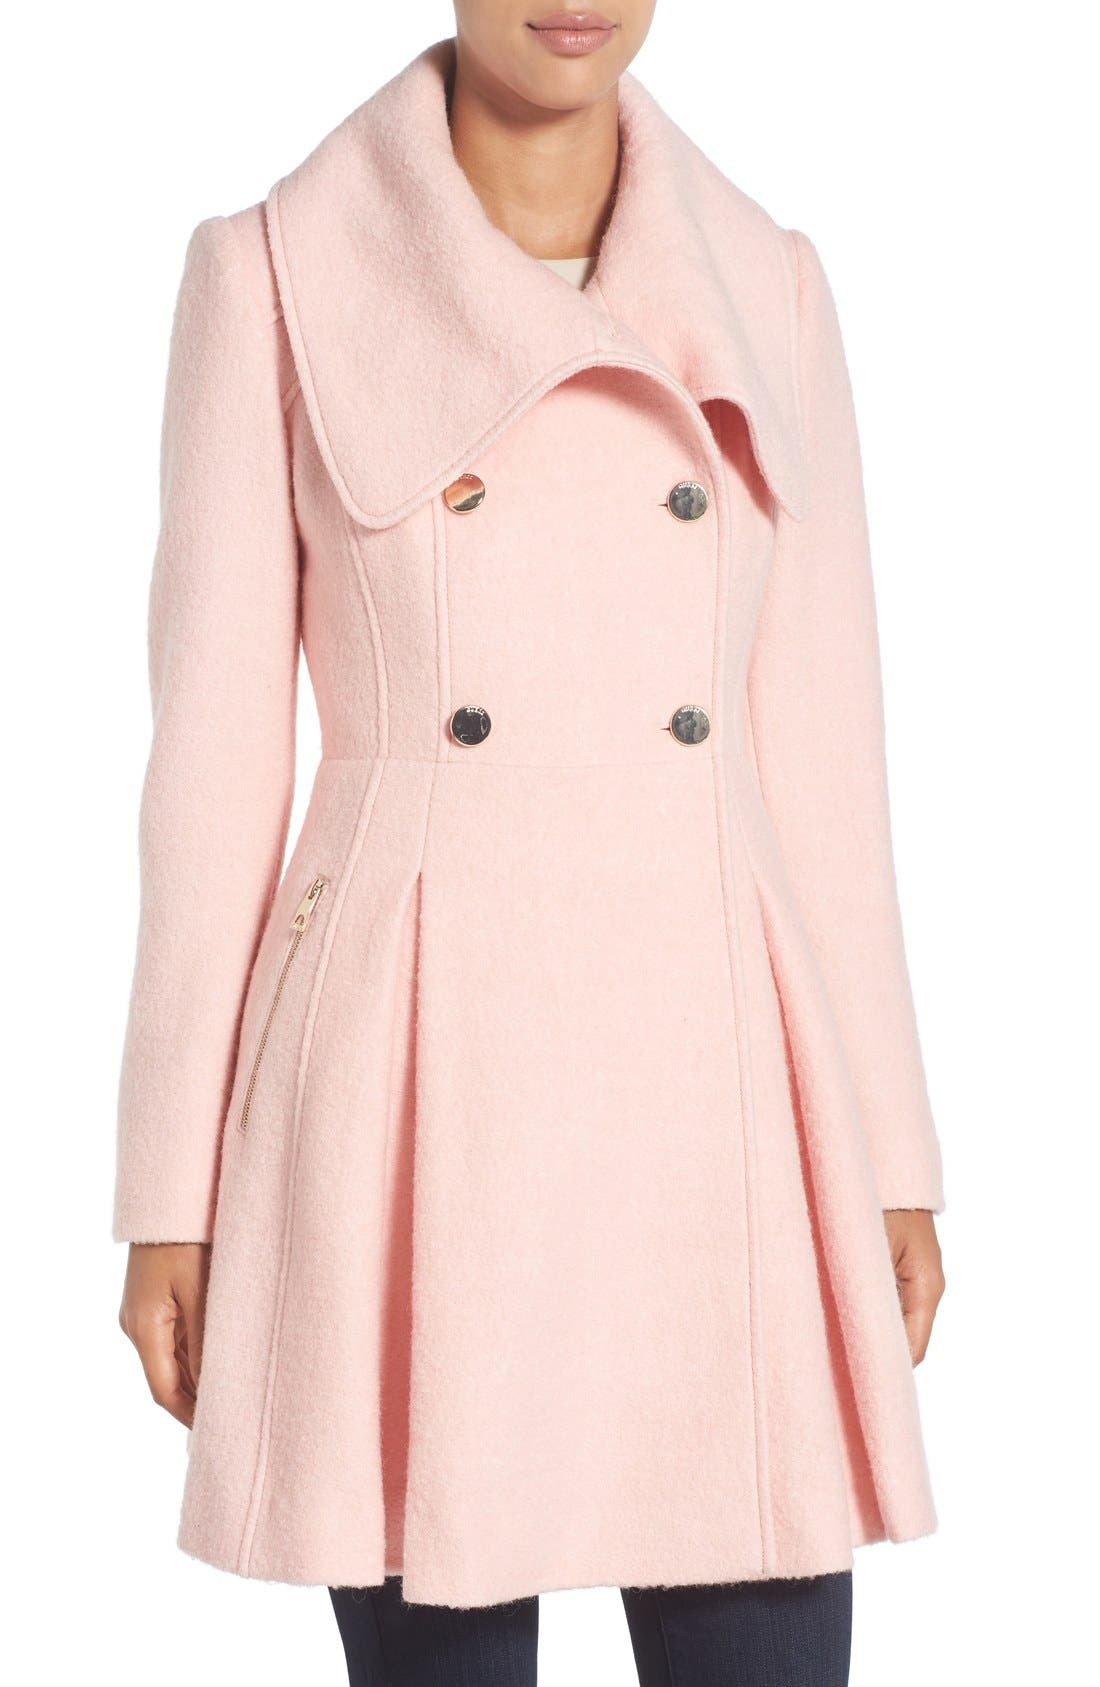 Guess Envelope Collar Double Breasted Coat Regular